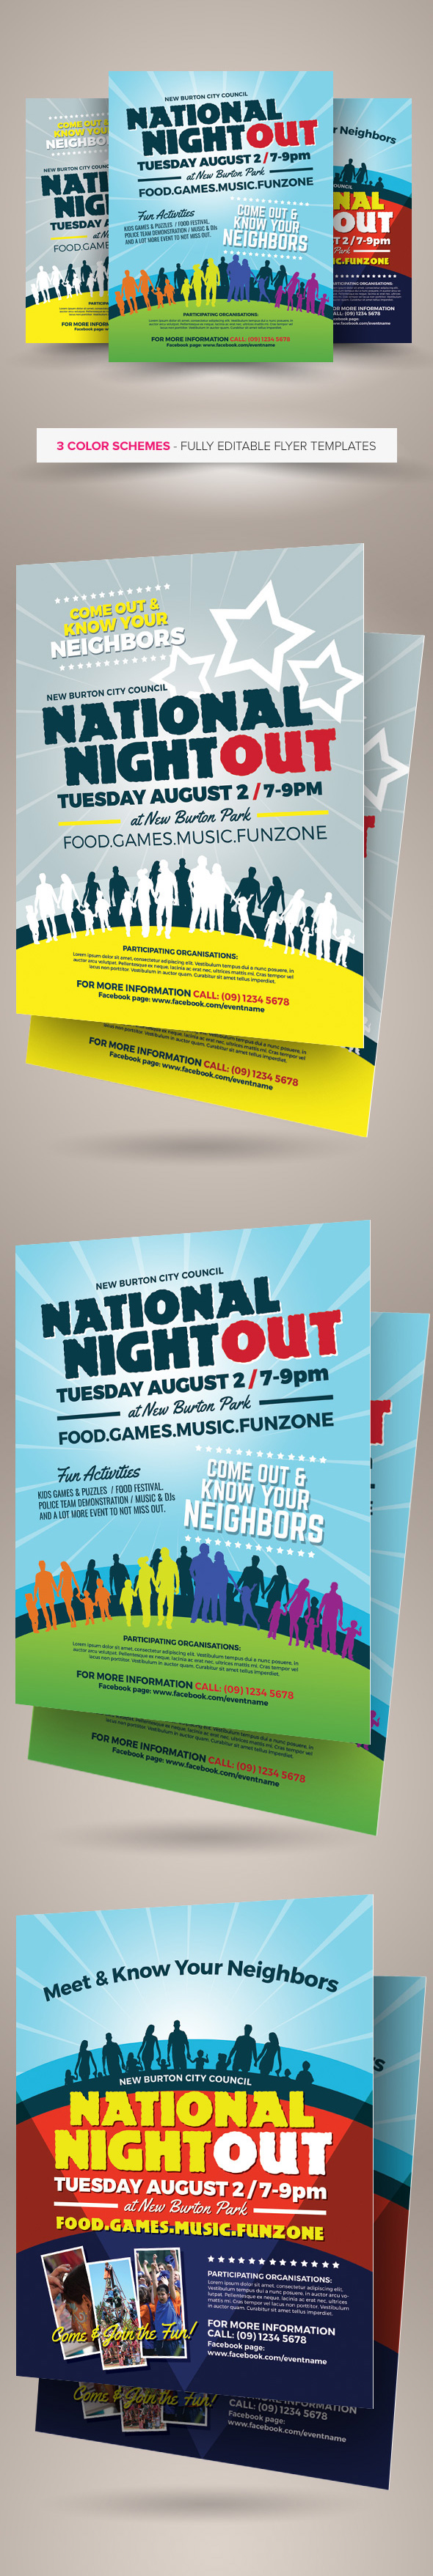 national night out flyer templates on behance national night out flyer templates are fully editable design templates created for on graphic river more info of the templates and how to get the